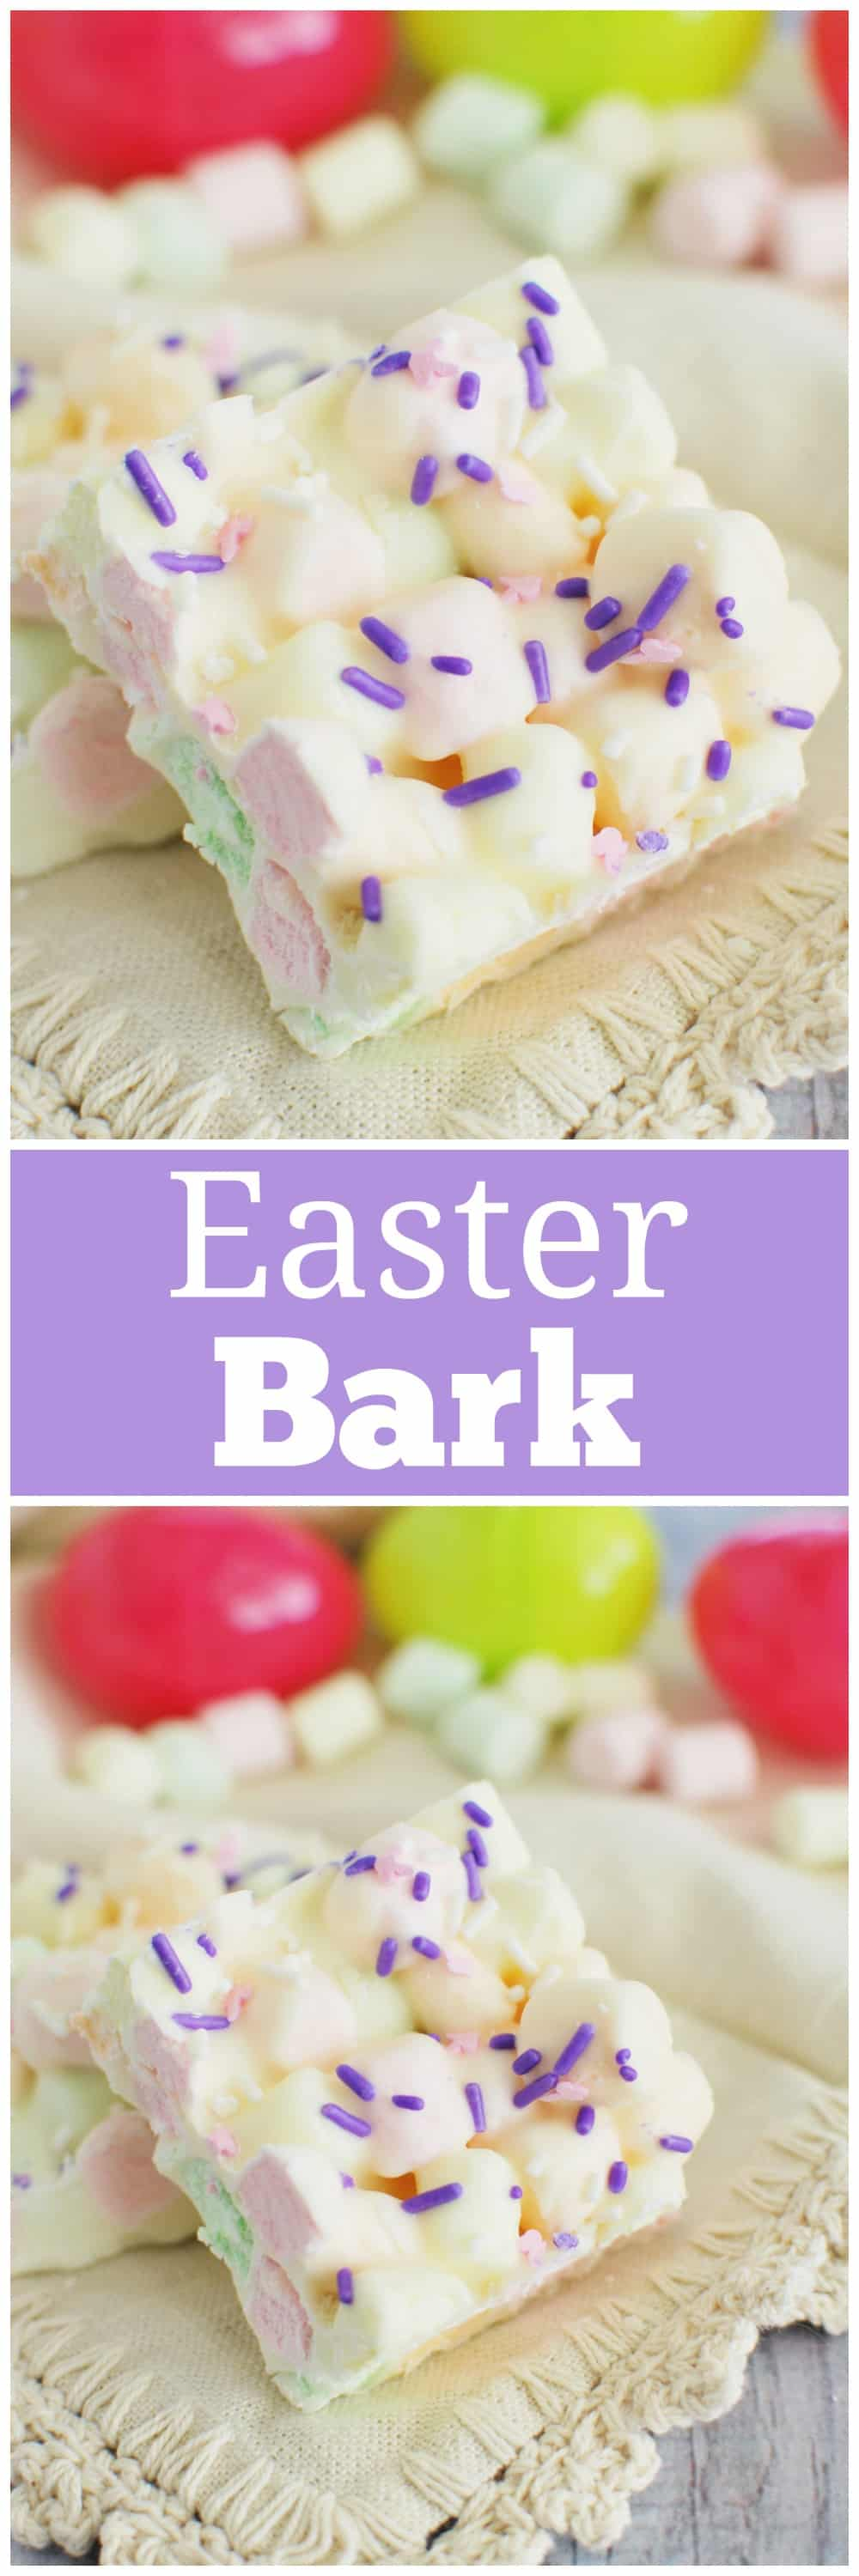 Easter Marshmallow Bark - the cutest Easter treat! Pastel marshmallows coated in white chocolate and topped with sprinkles. No bake and takes about 10 minutes to make!